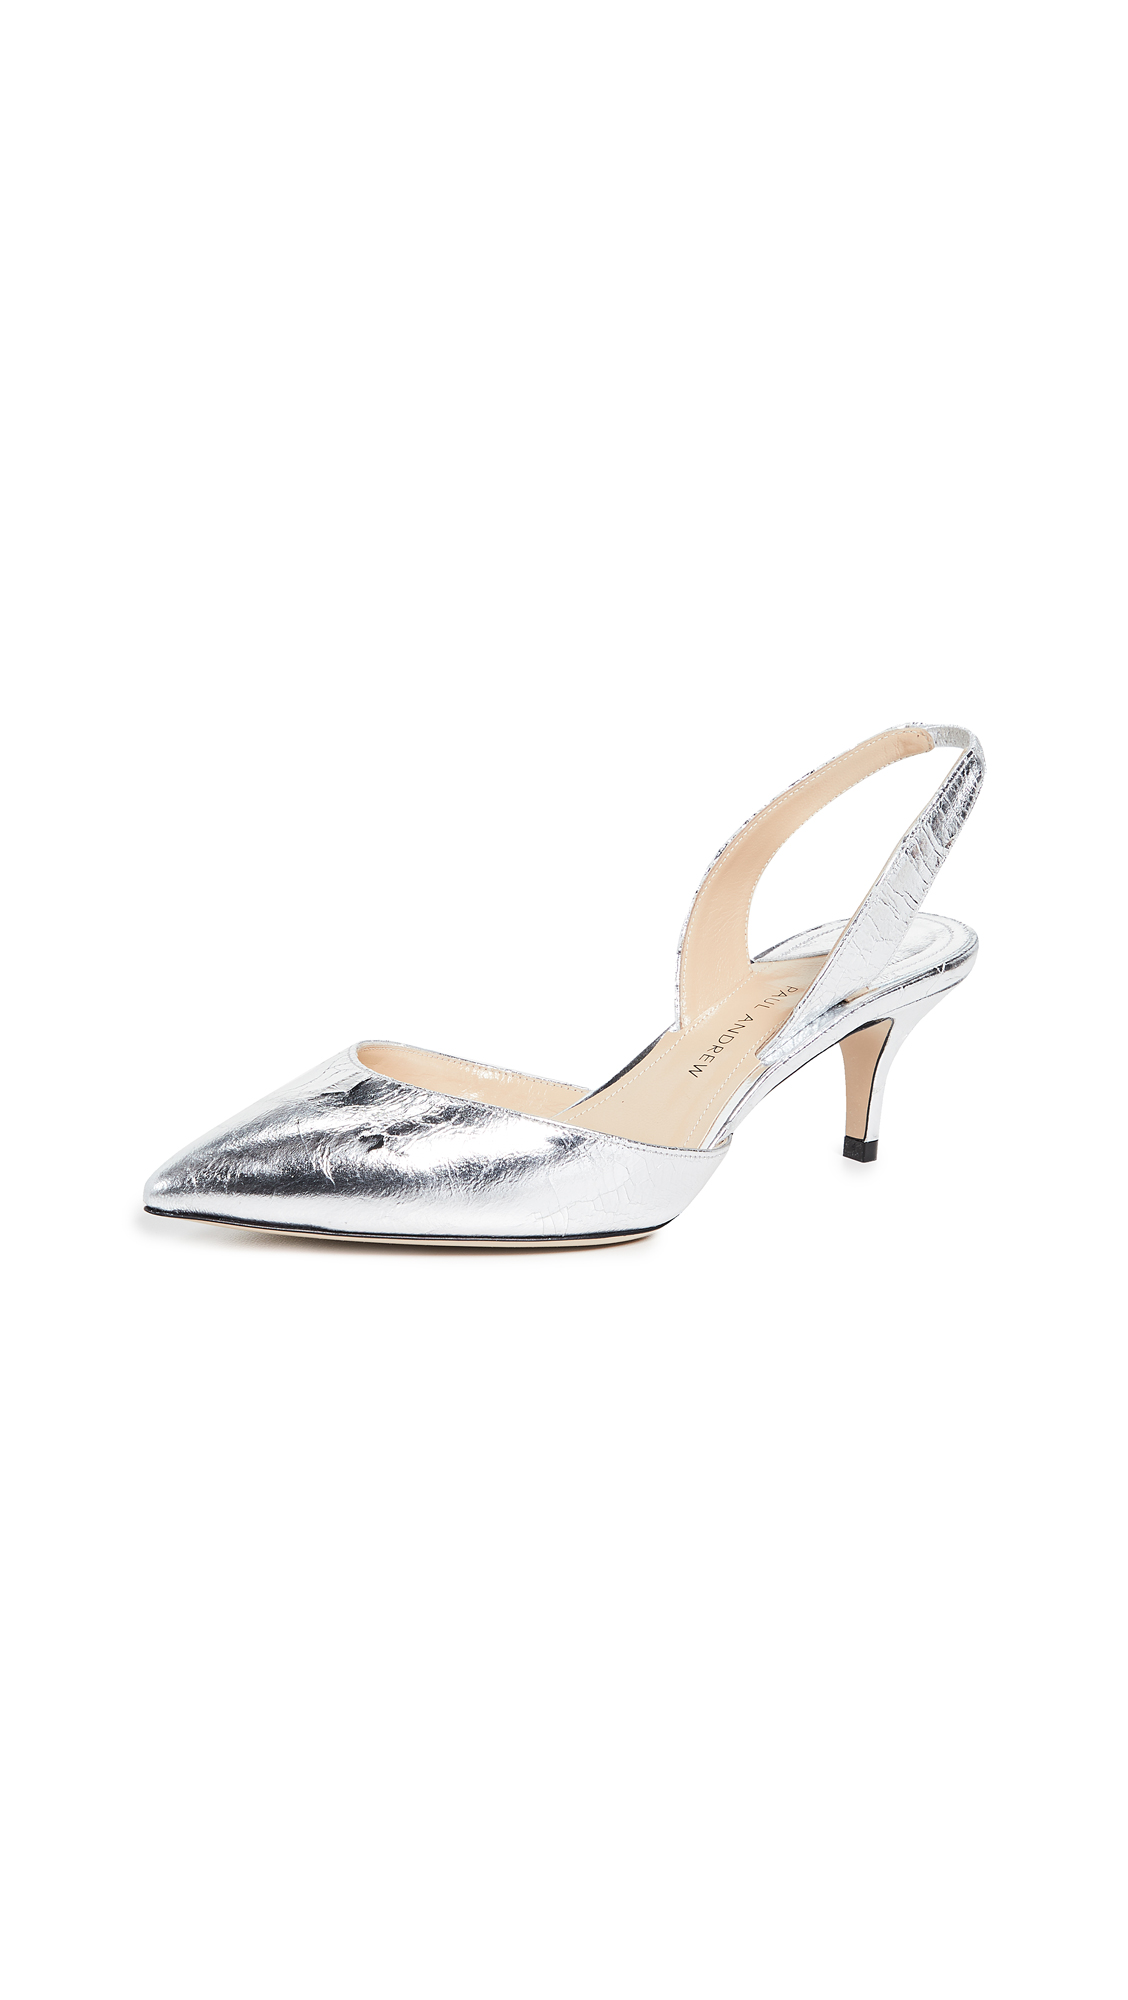 Photo of Paul Andrew Rhea 55mm Slingback Pumps - buy Paul Andrew footwear online